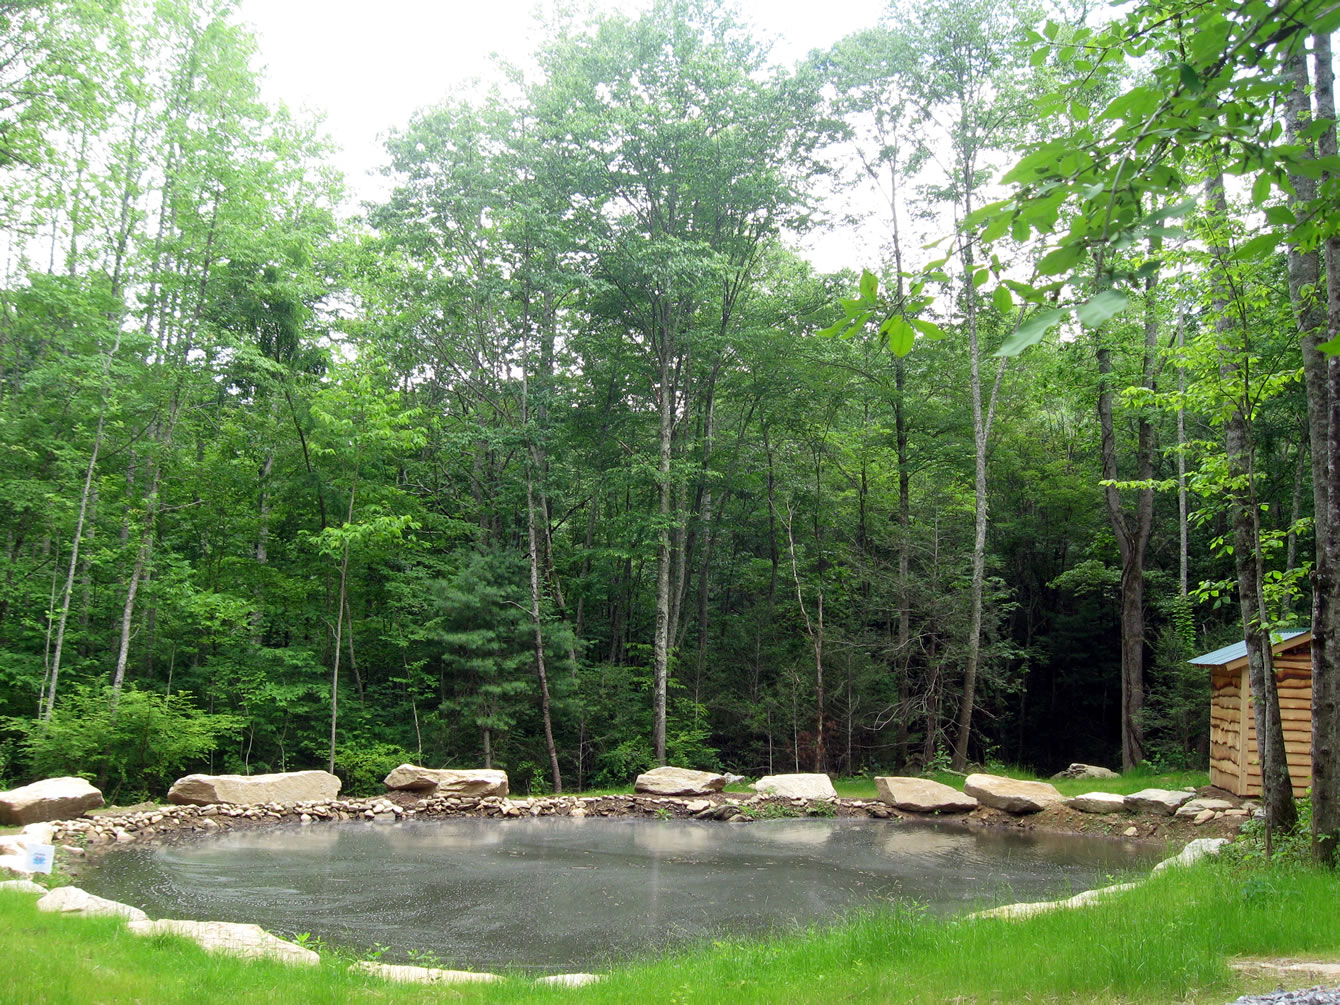 Micro hydro pond at Hickory Nut Forest